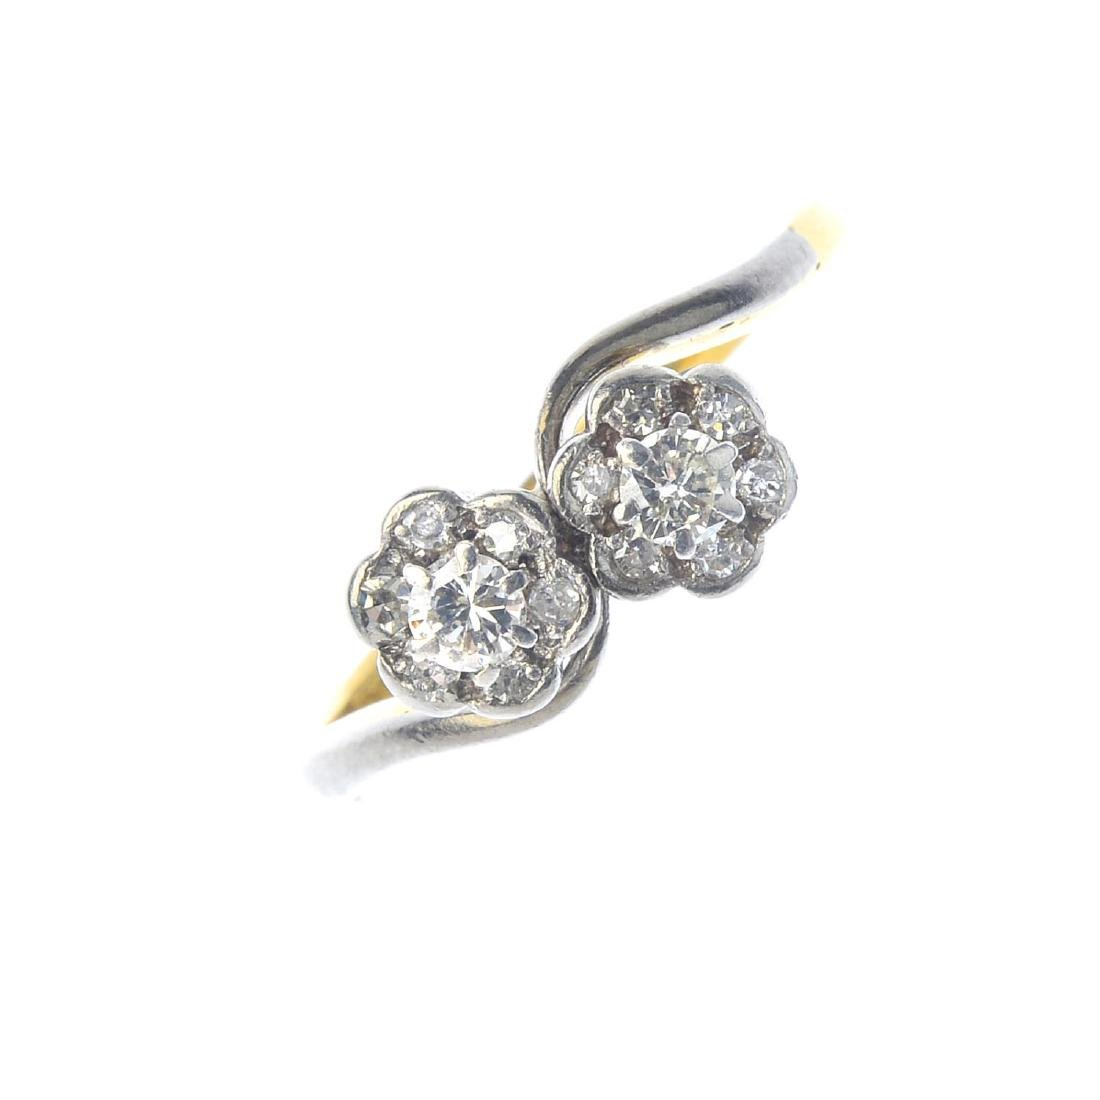 An 18ct gold diamond cluster ring. Designed as a floral